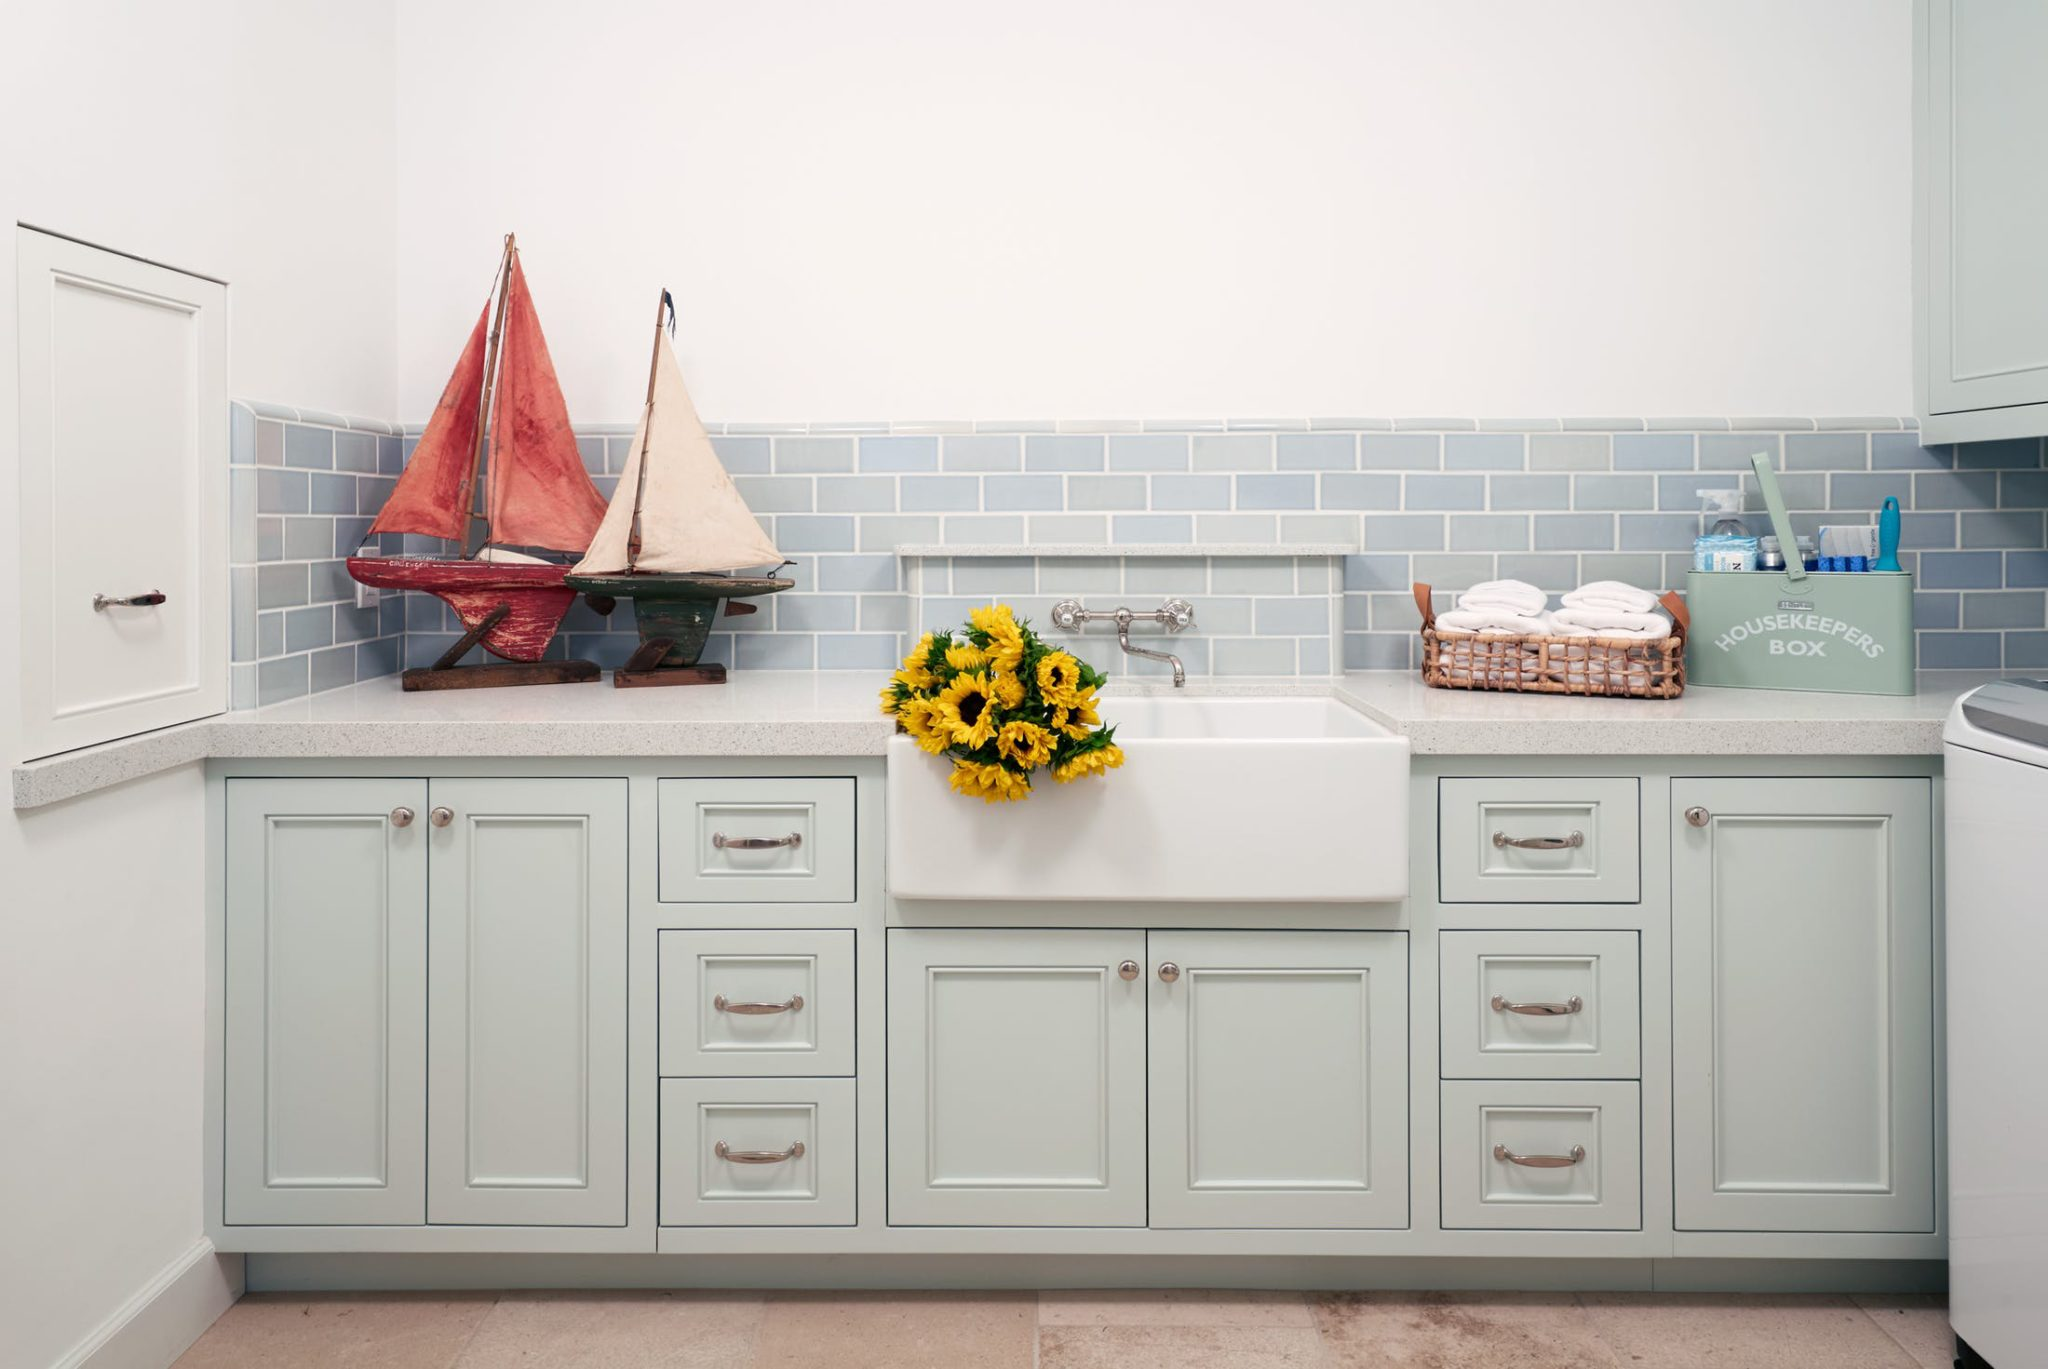 A farmhouse sink by Waterworks in a charming laundry room designed by Erin King Interiors.